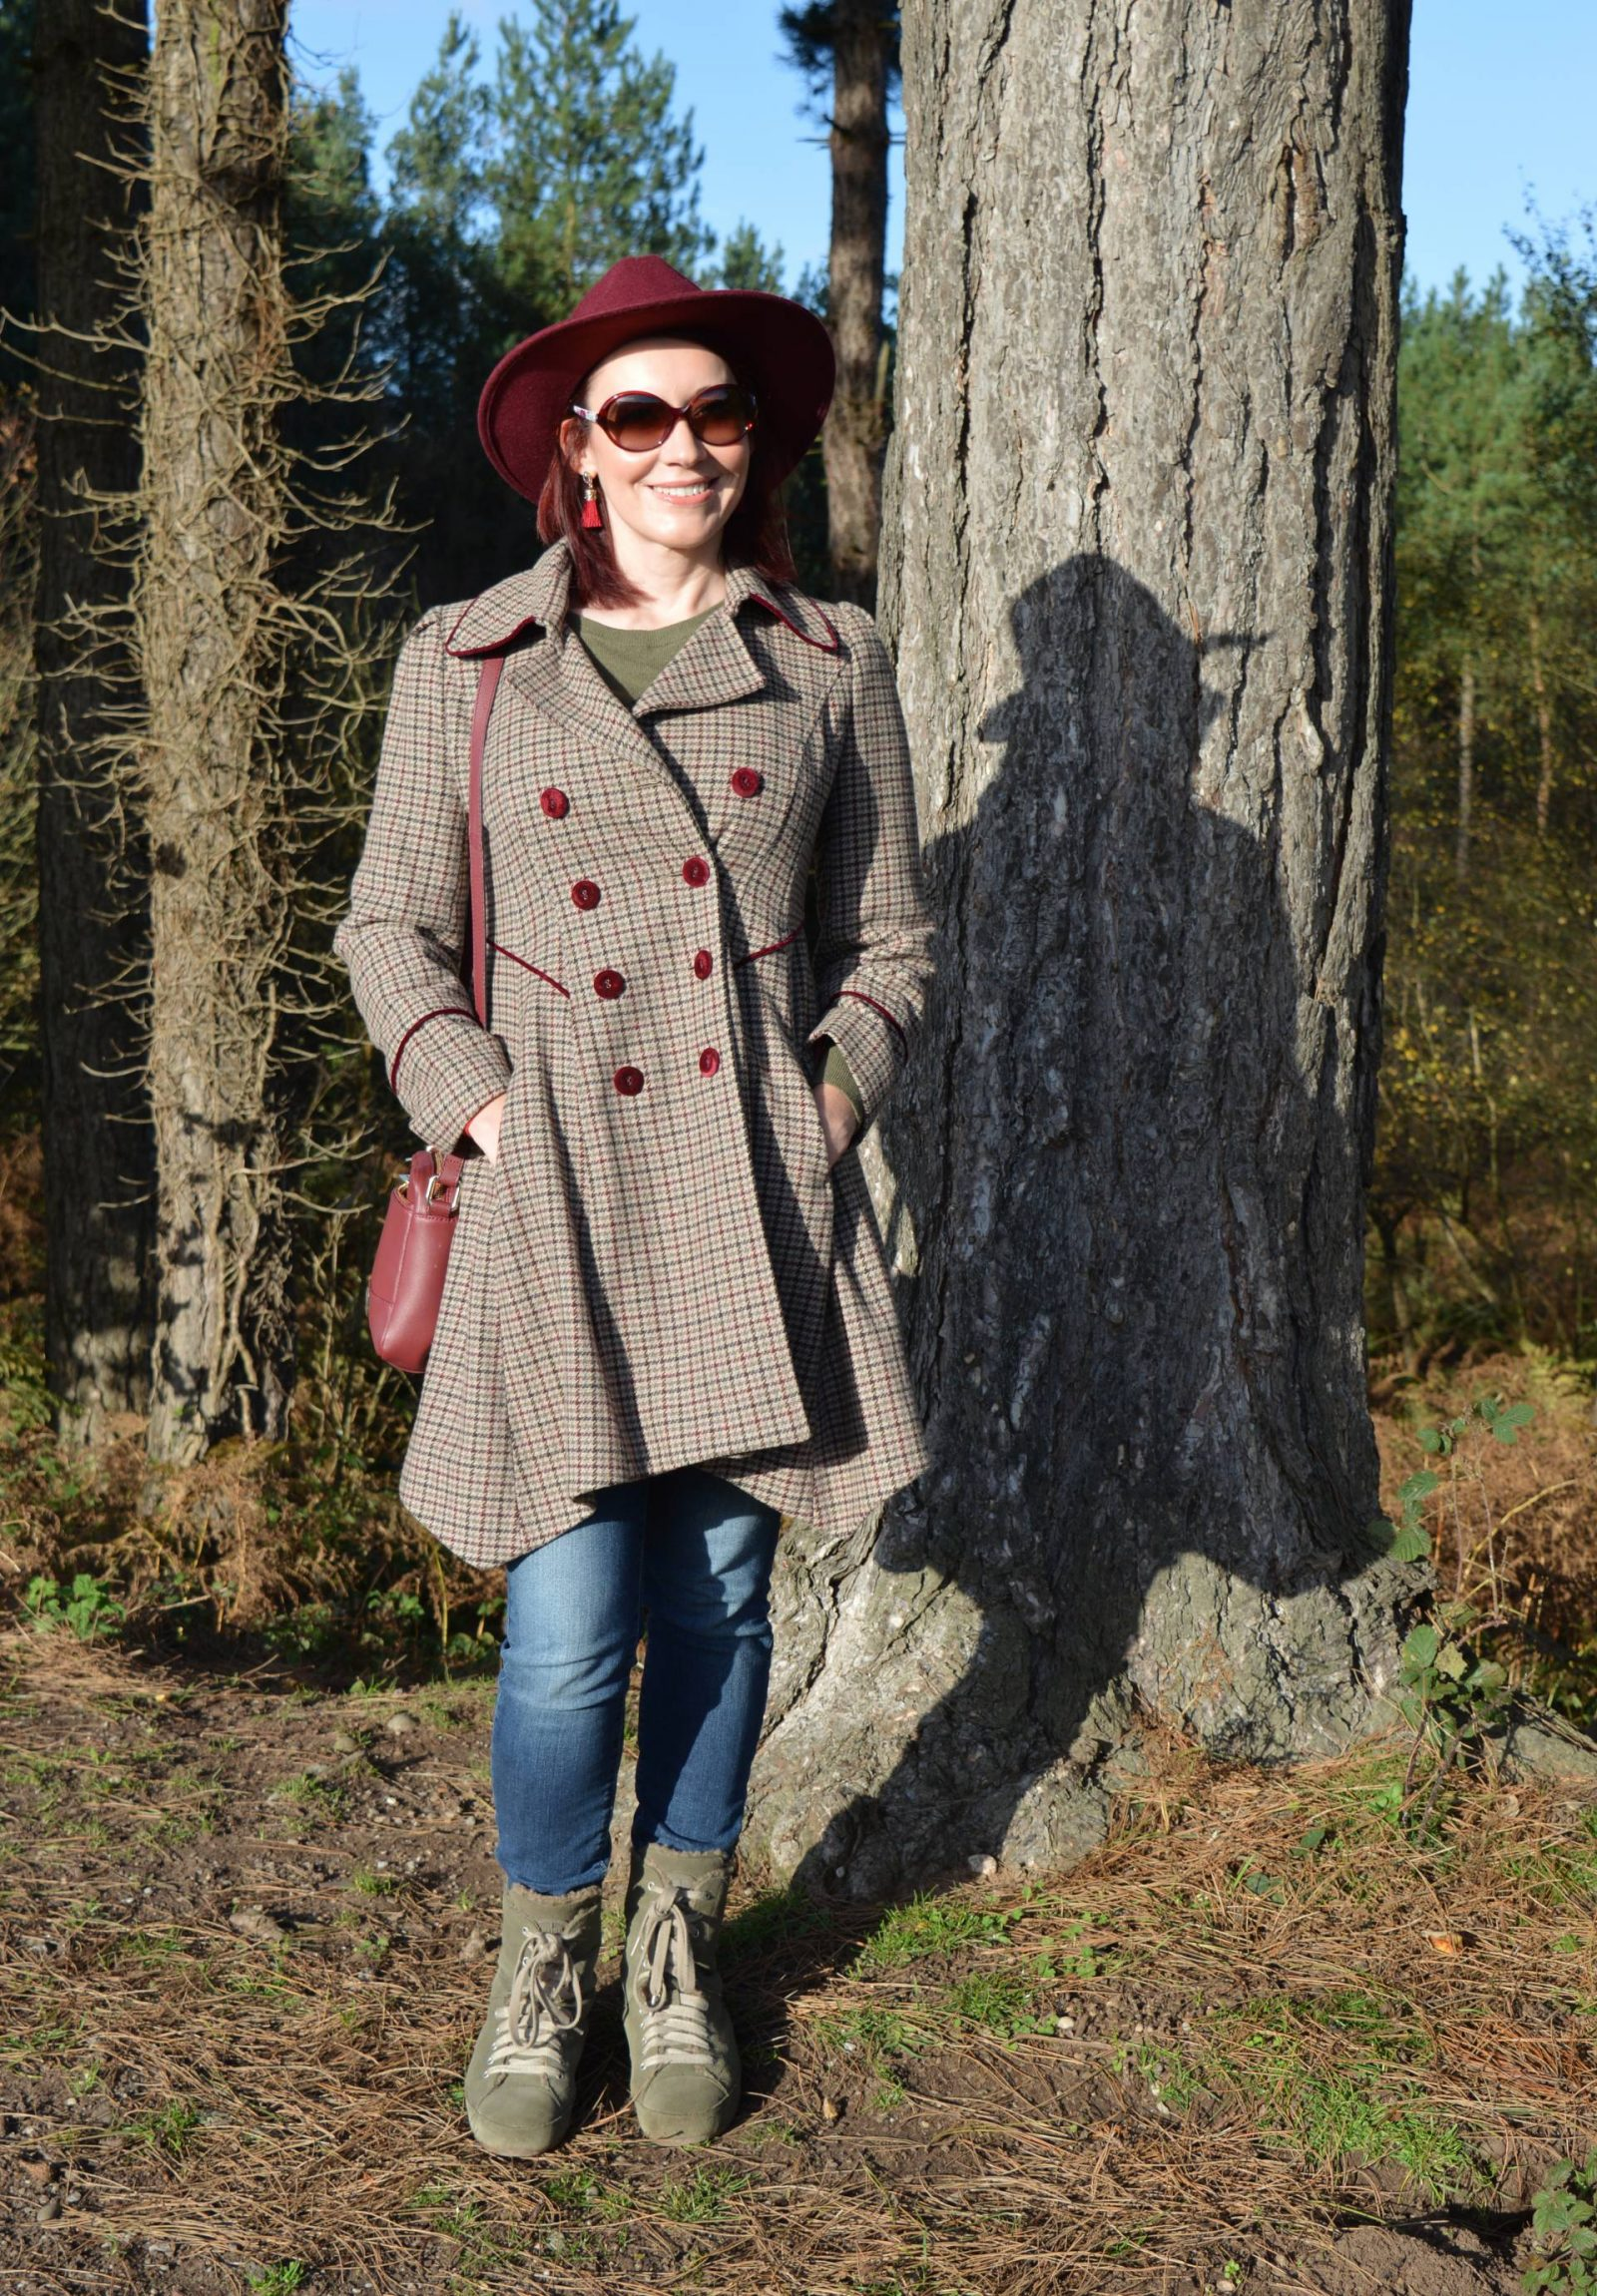 Checked Coat and Wide Brim Hat for a Walk in the Forest